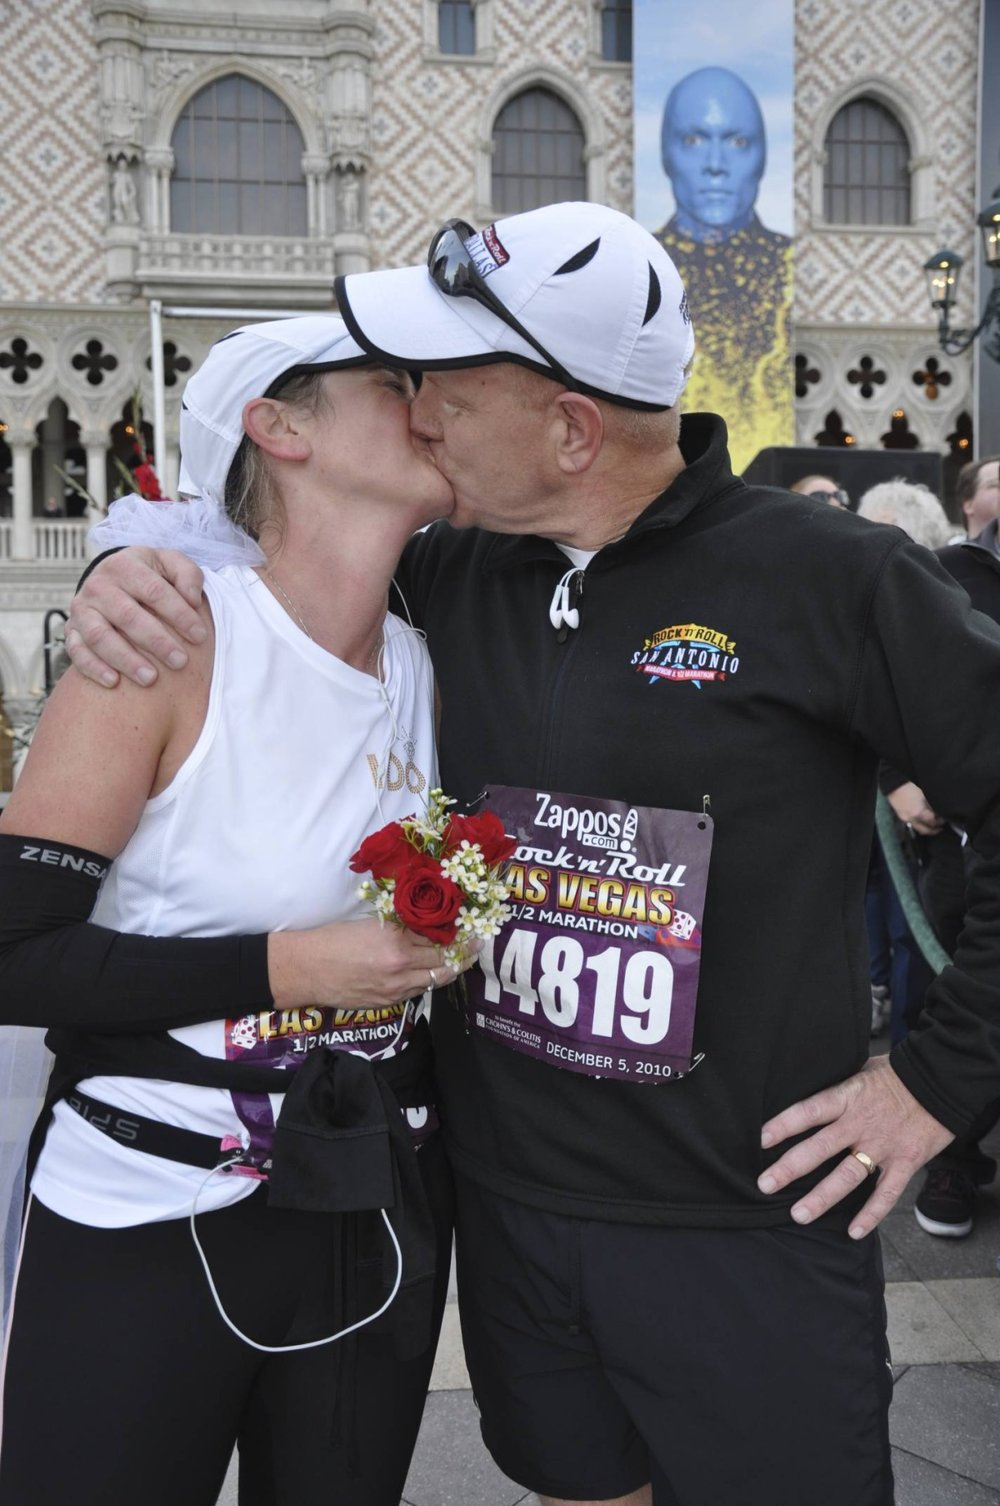 Getting married at the Run Thru Chapel at the Las Vegas Marathon. (2010)